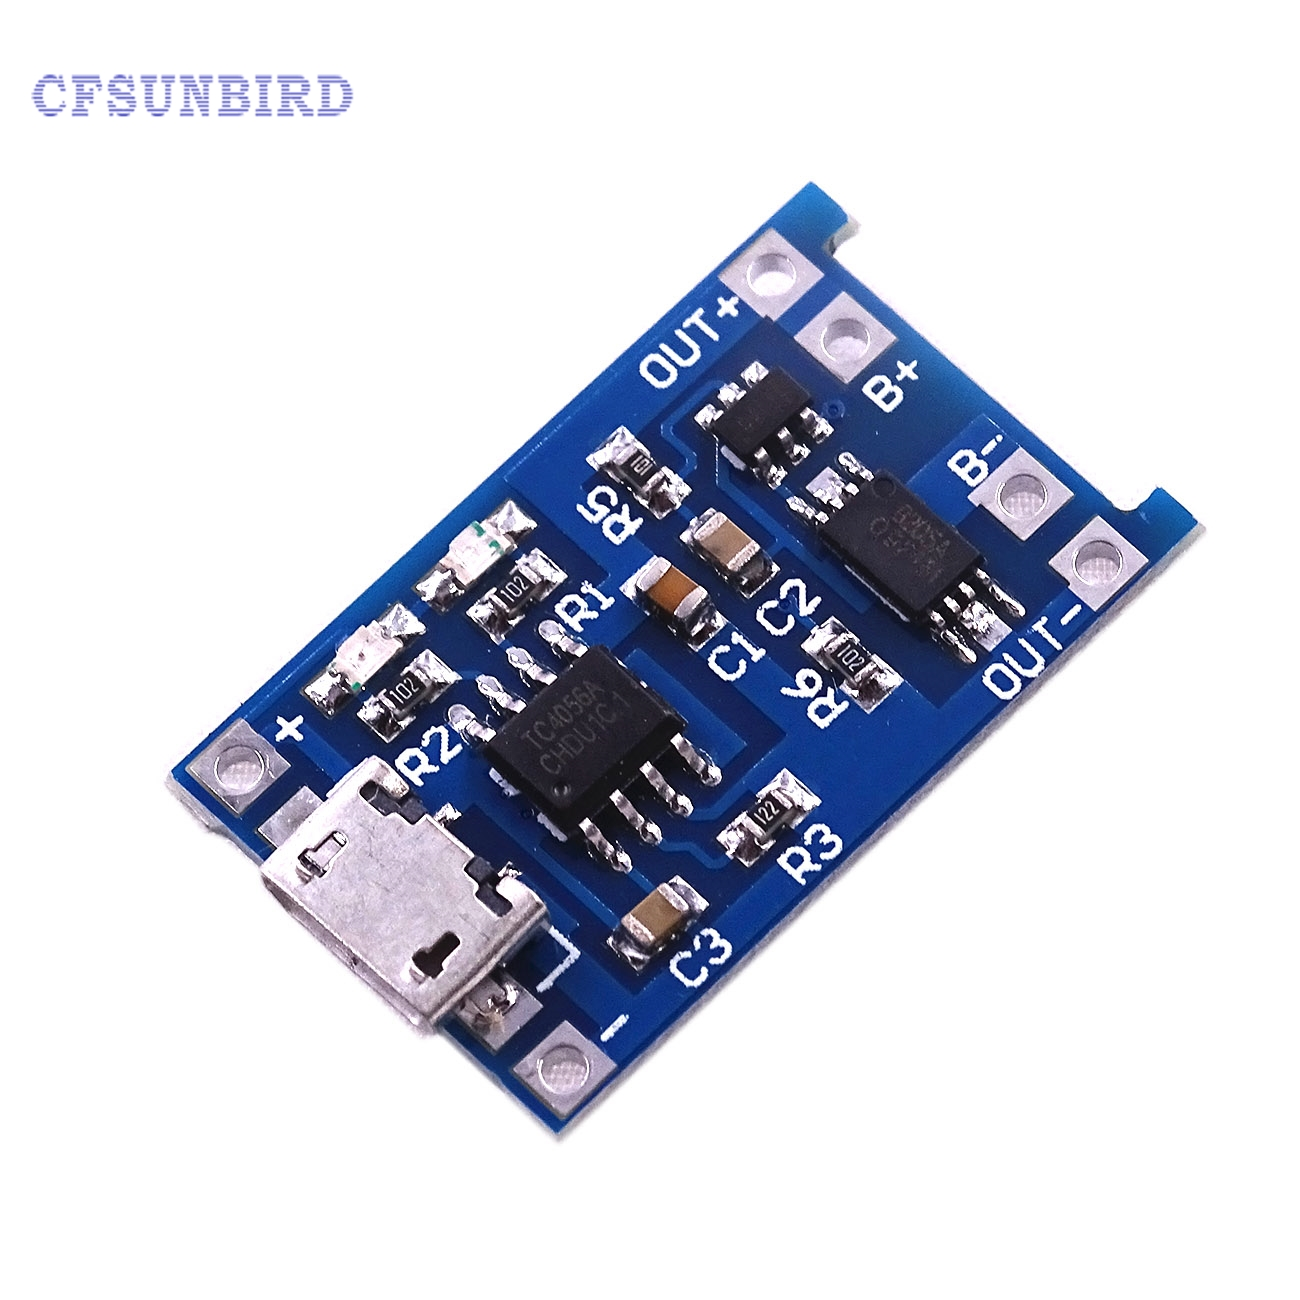 50pcs  Micro USB 5V 1A 18650 TP4056 Lithium Battery Charger Module Charging Board With Protection Dual Functions 4pcs micro usb 5v 1a 18650 tp4056 lithium battery charger module lipo charging board with dual functions automatic protection